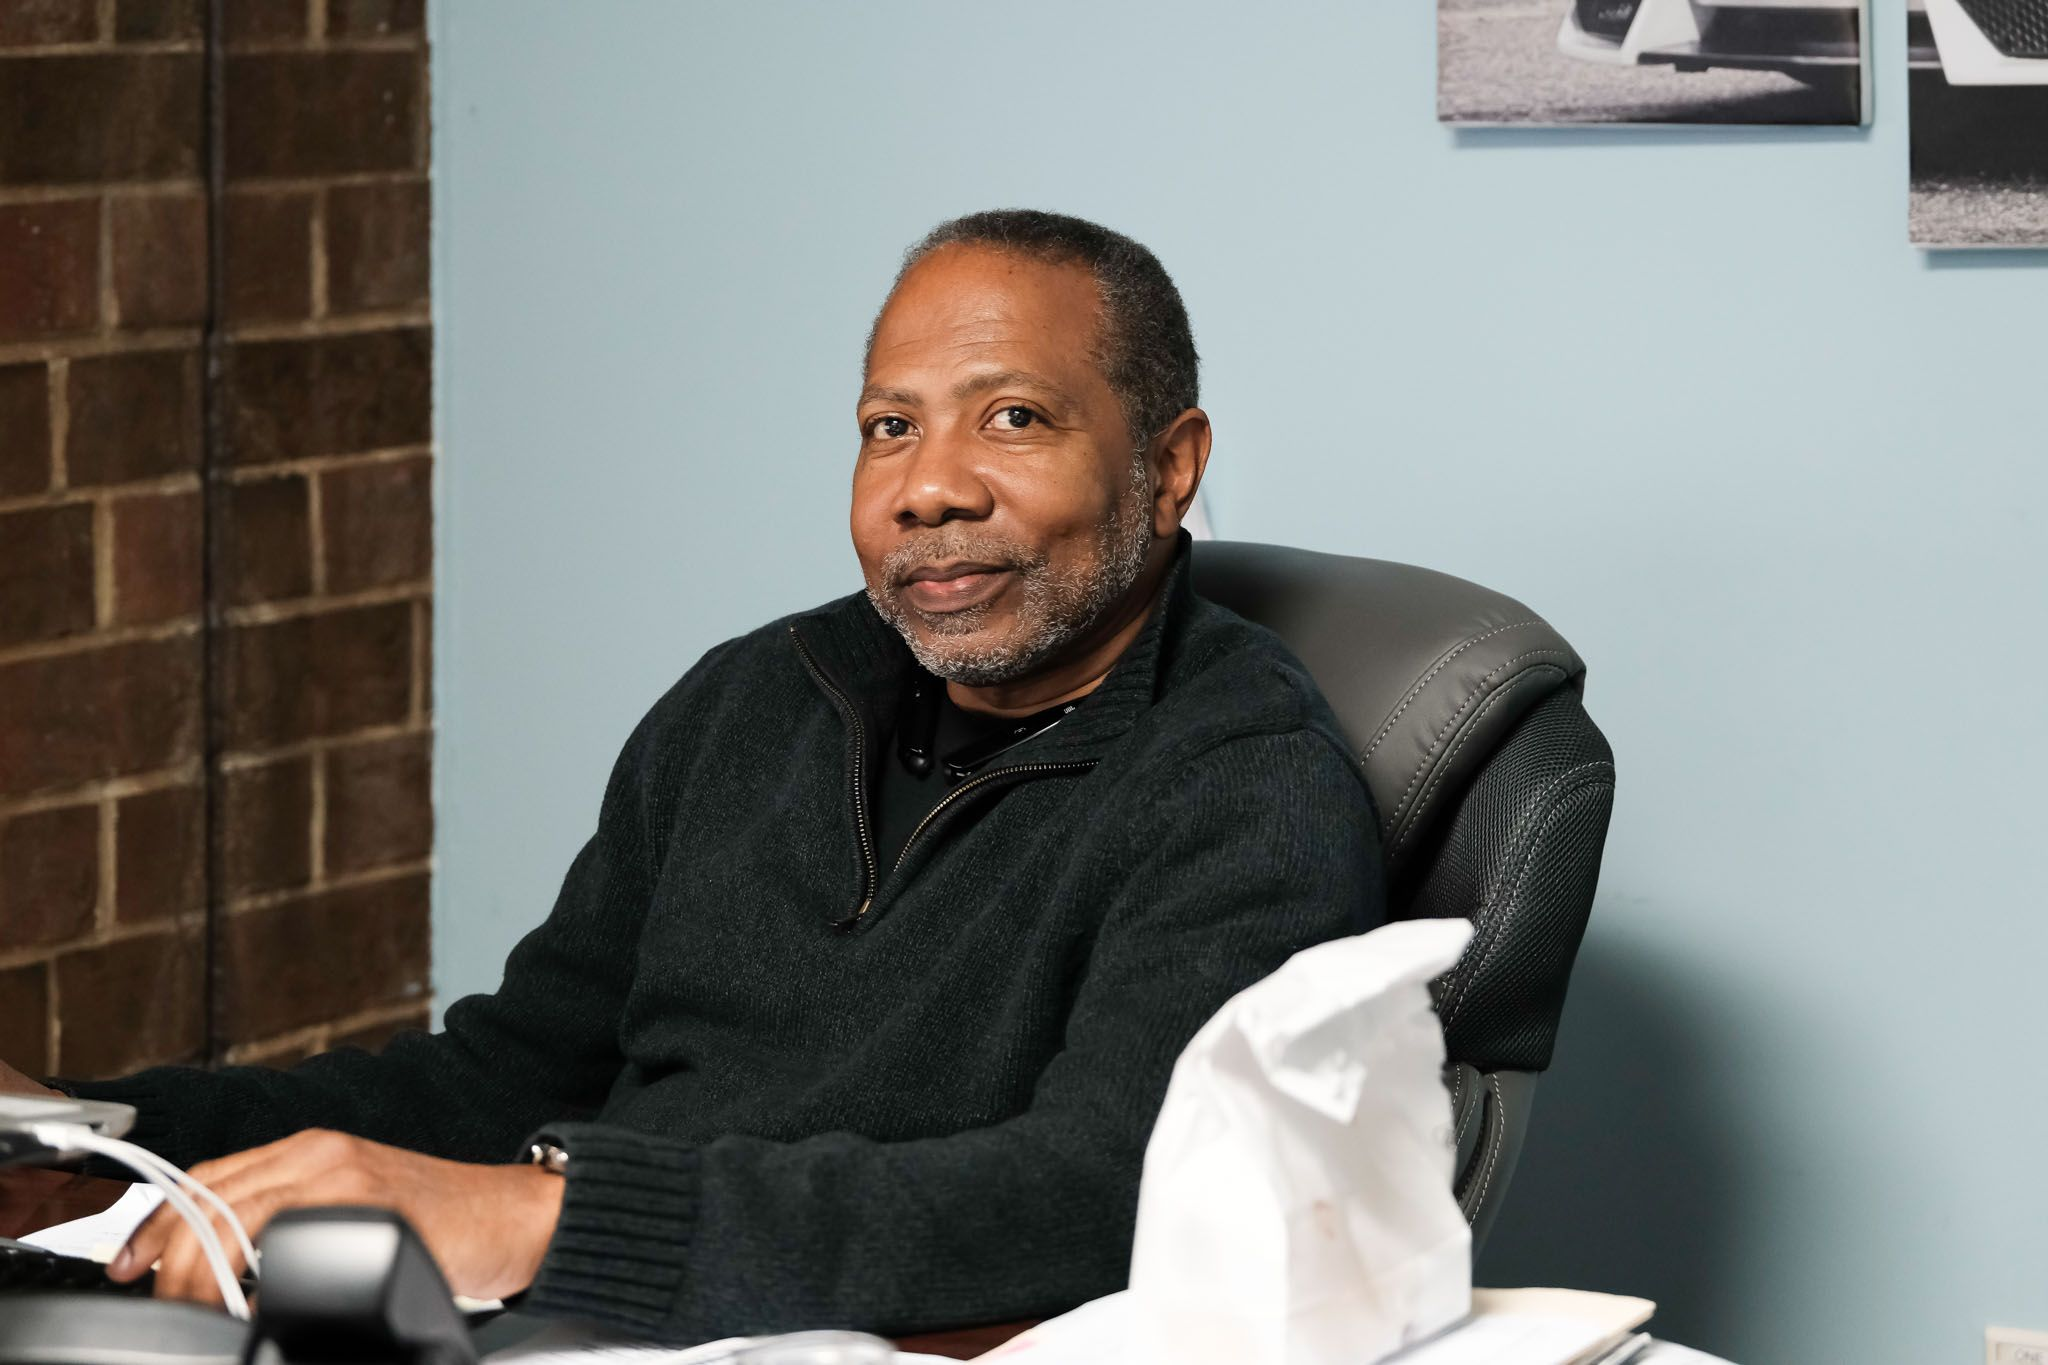 James Jackson, Access to Recovery Services Director